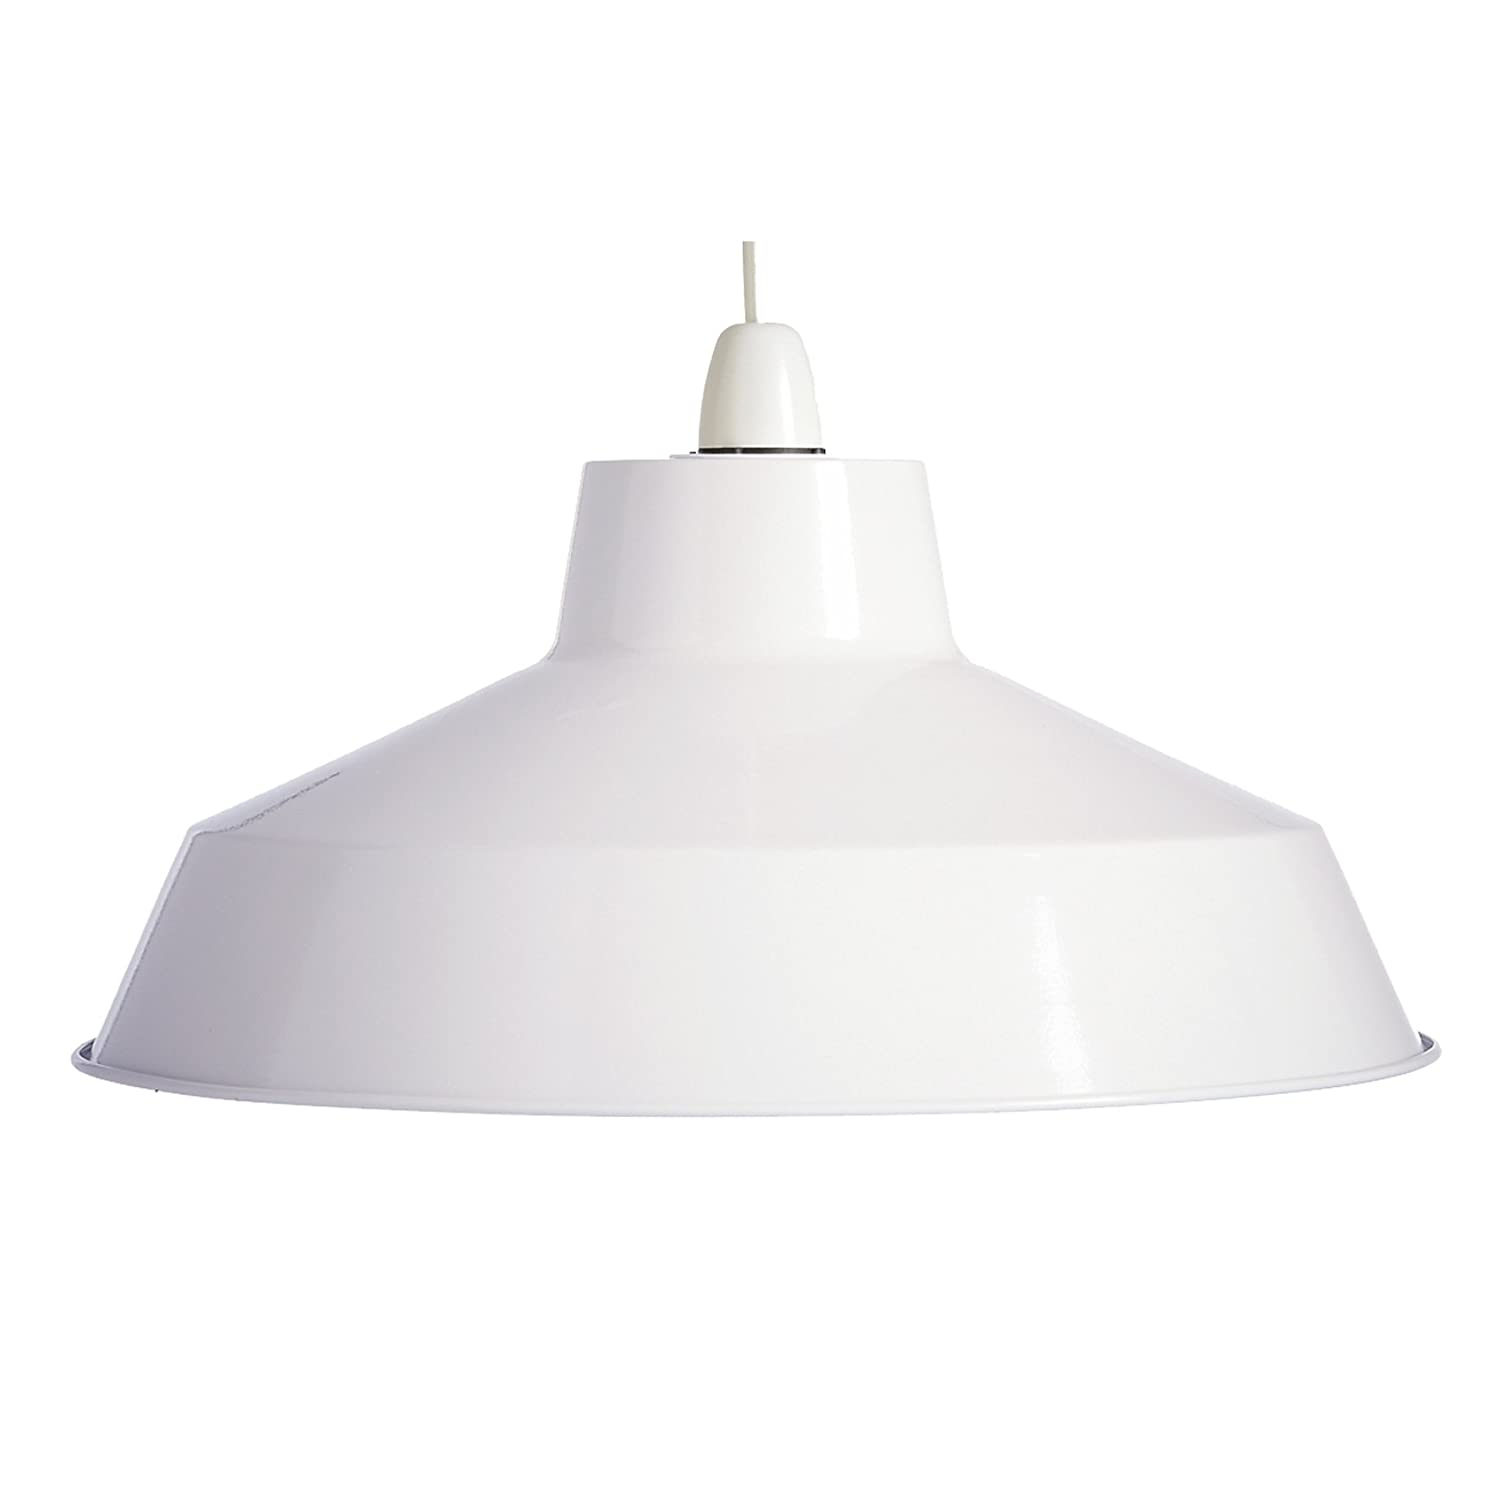 Large modern retro dual fitting glossy metal ceiling light fitting large modern retro dual fitting glossy metal ceiling light fitting pendant shade white amazon kitchen home aloadofball Image collections